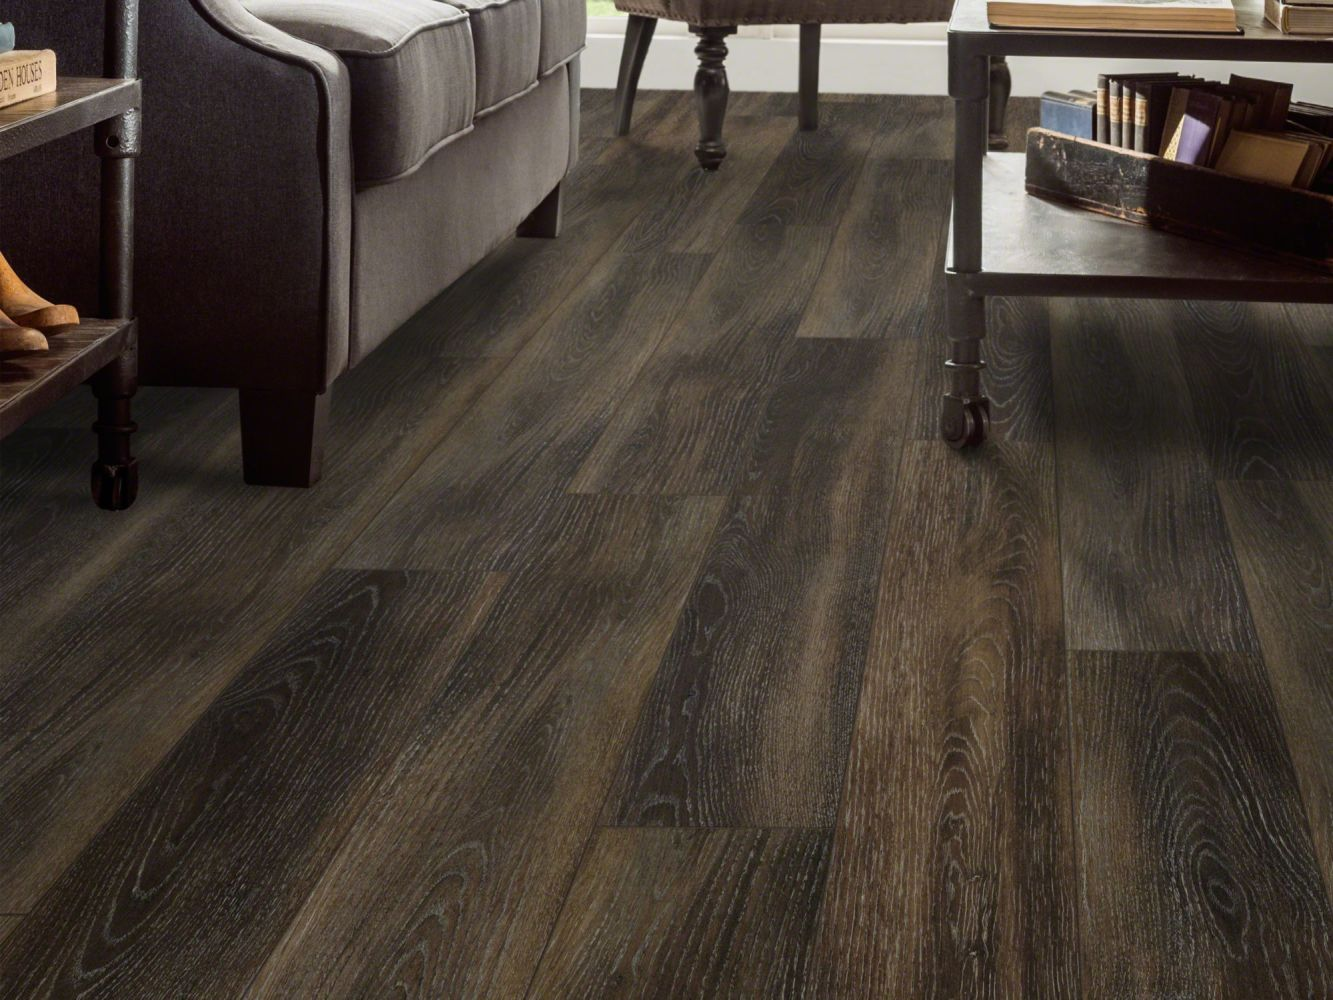 Shaw Floors Resilient Residential Tivoli Plus Cacao 00779_0845V